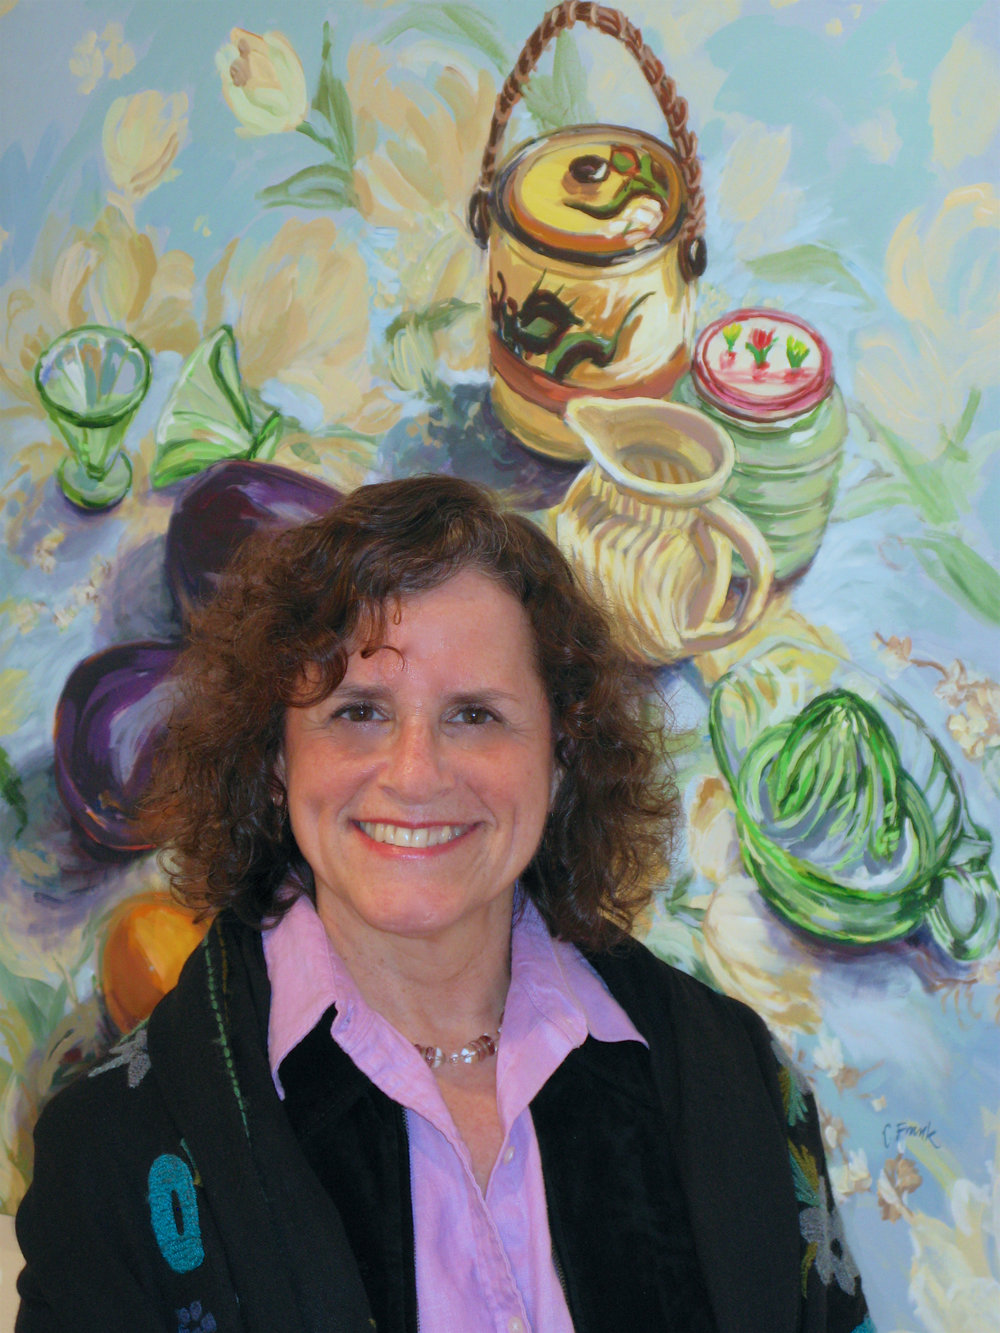 May 2008 - Two of Leona's paintings are accepted into the Annual Connecticut Women Artists Exhibition in New Haven, CT.